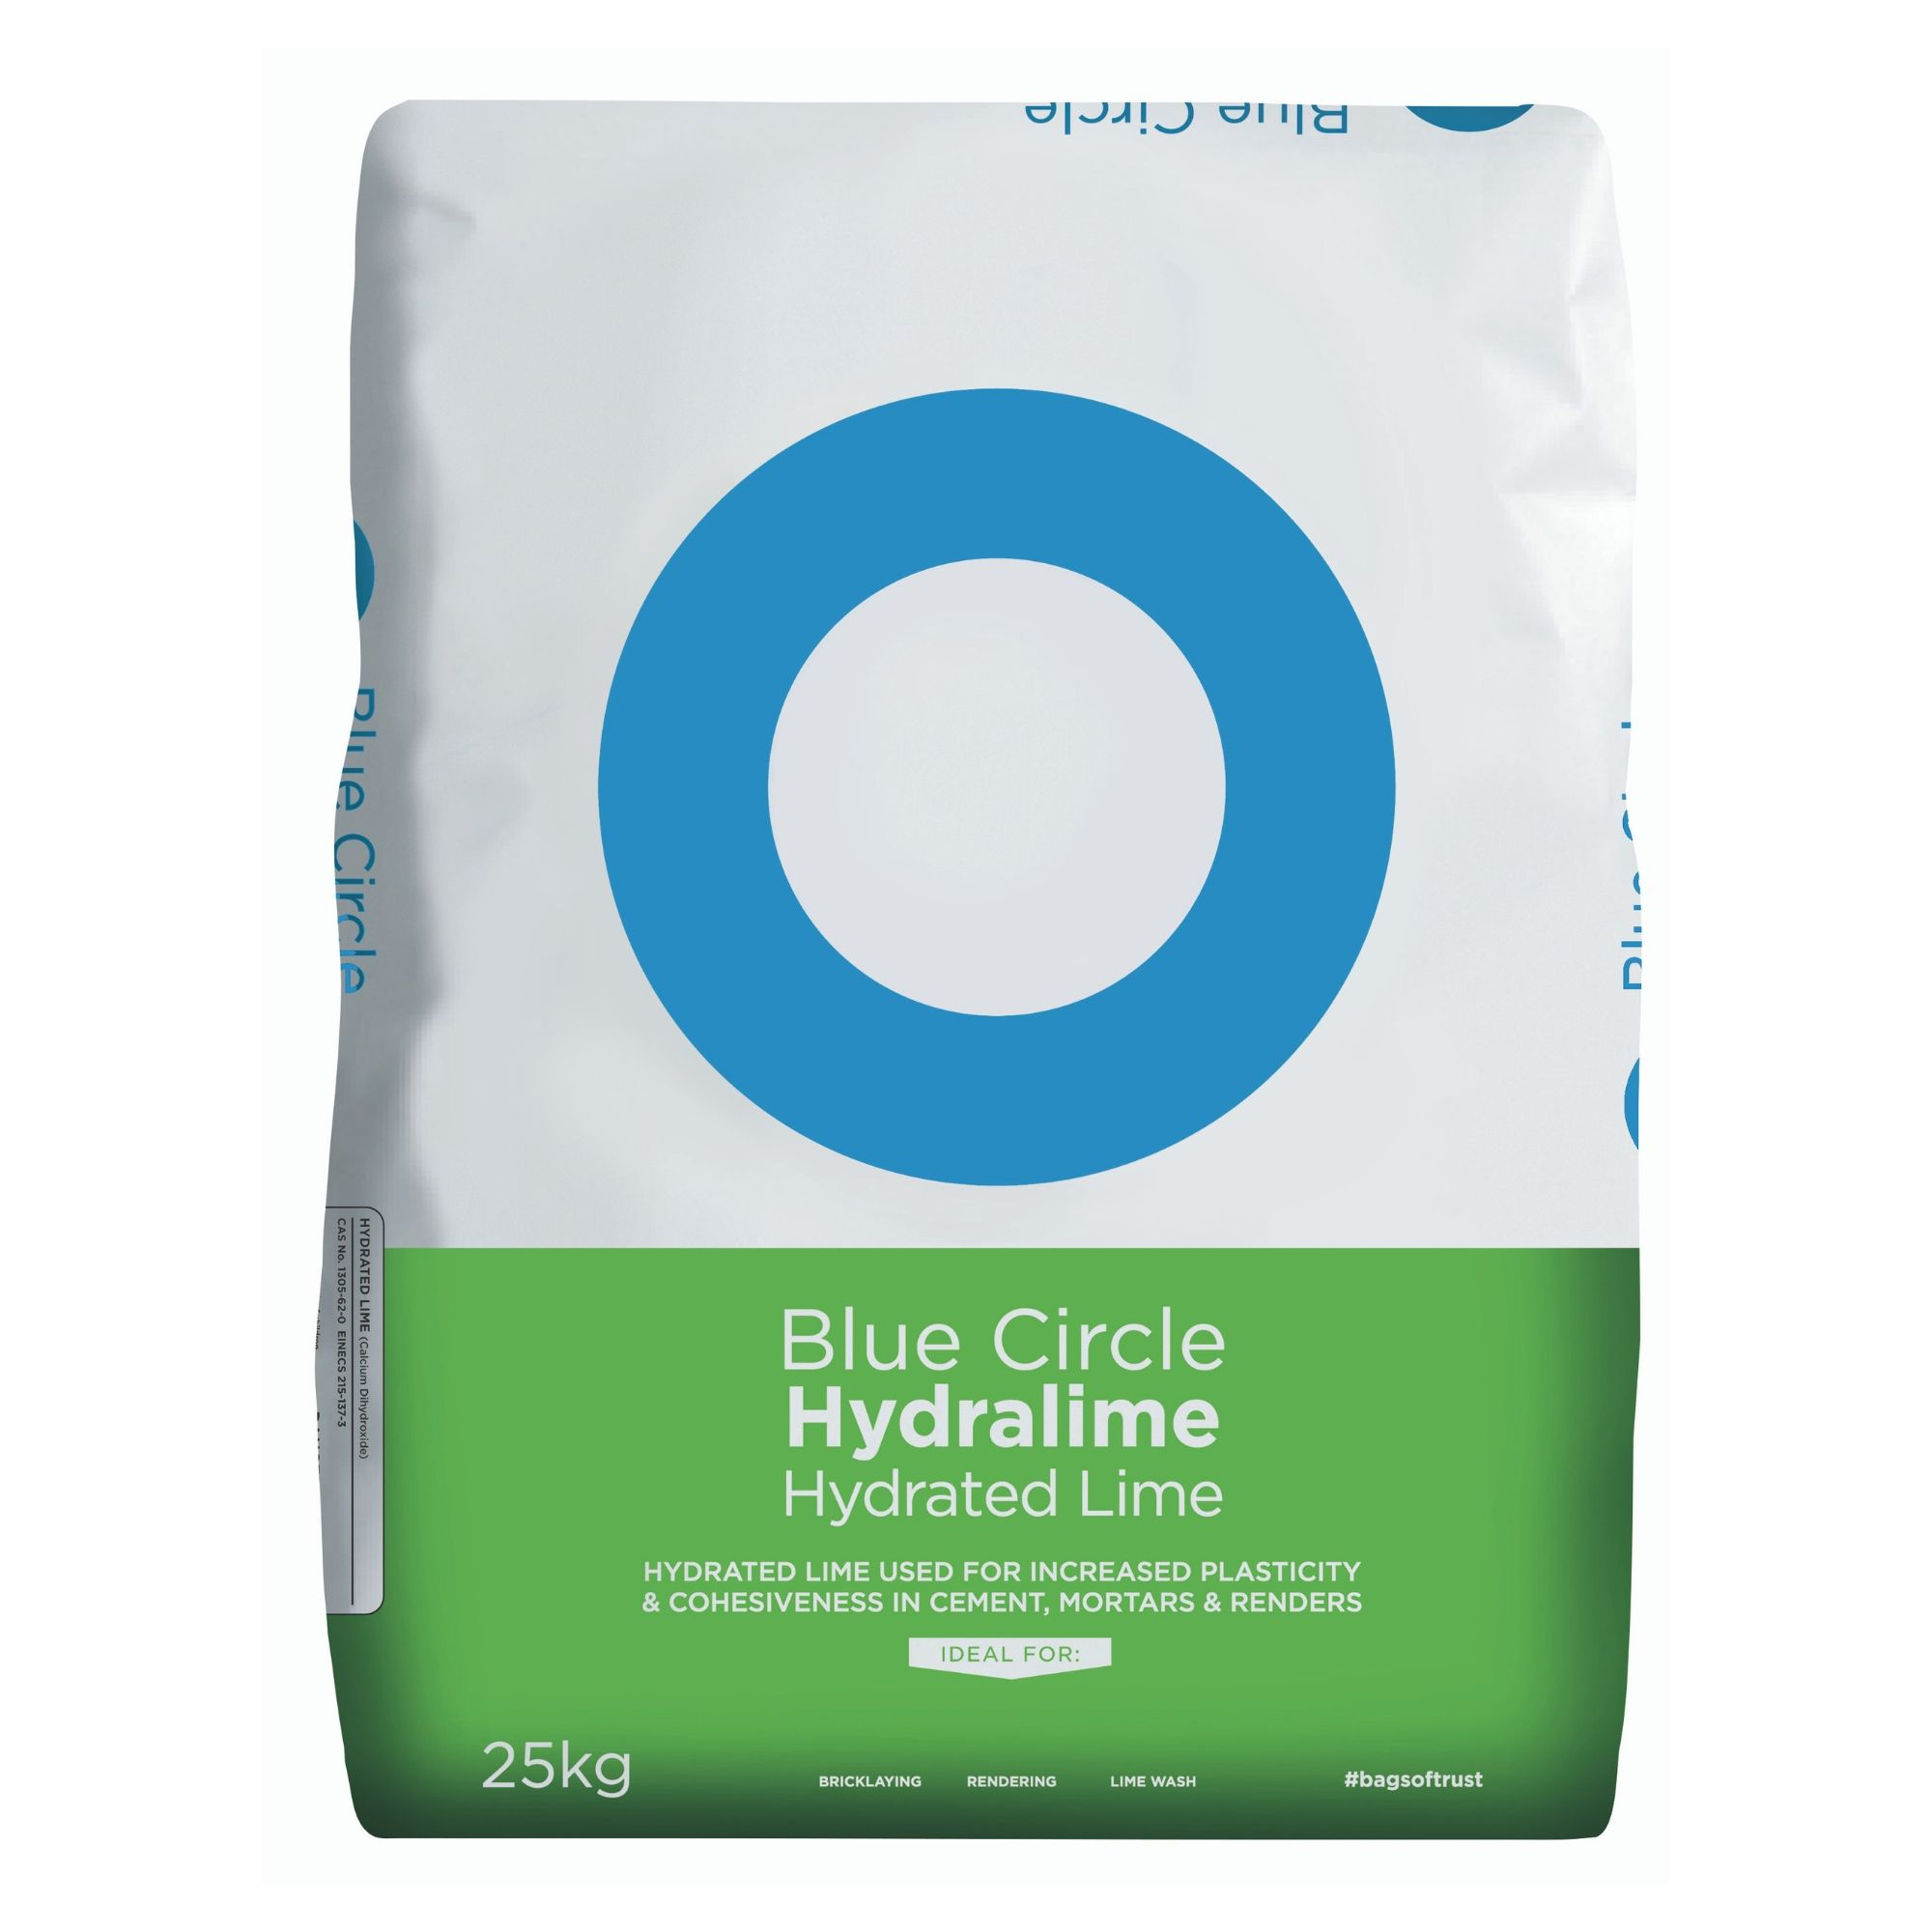 Blue Circle Hydrated Lime 25kg Bag Departments Diy At B Amp Q